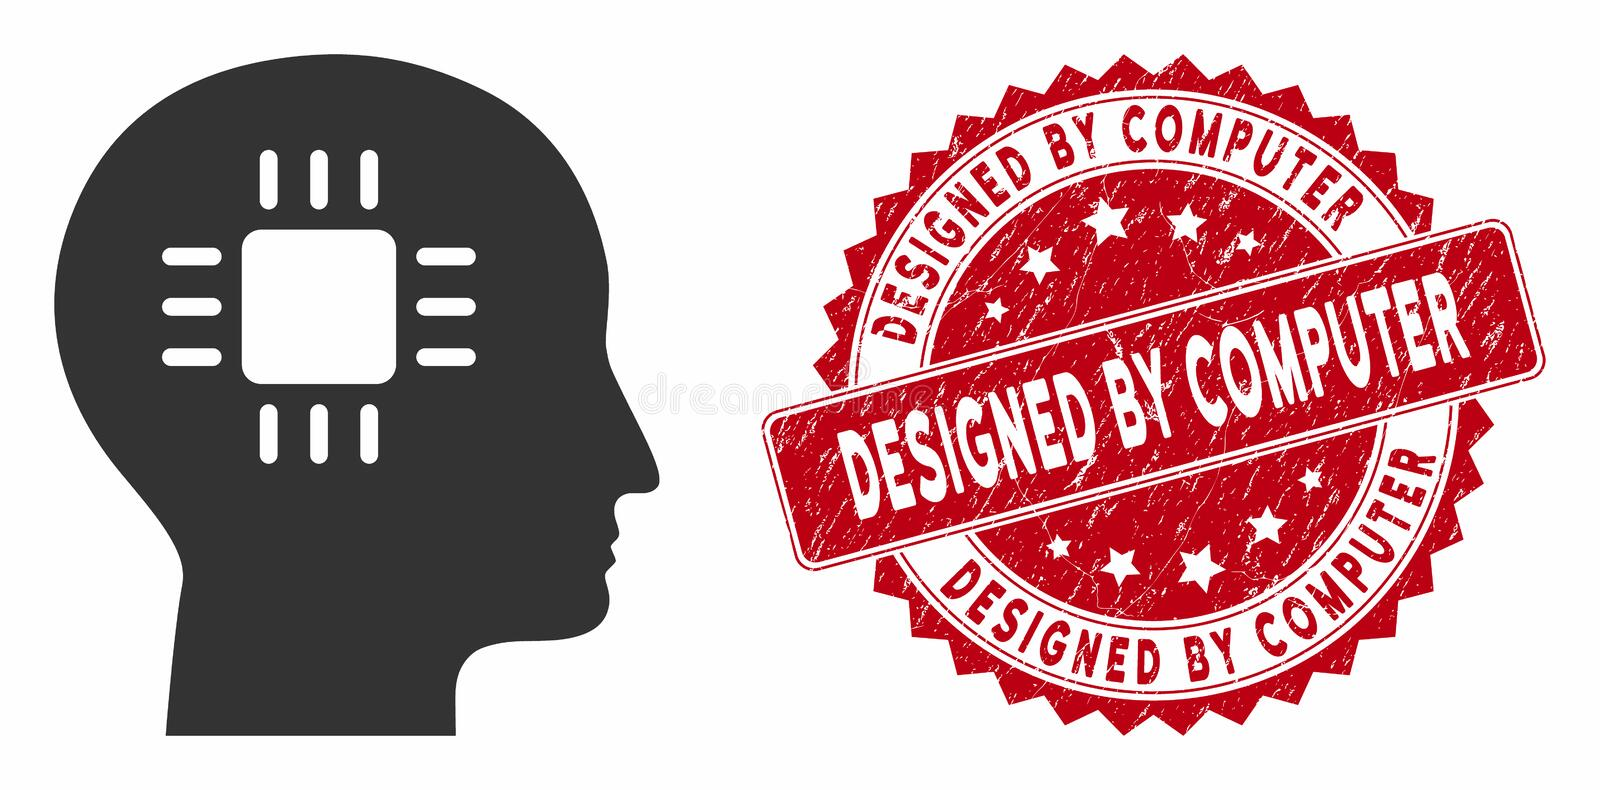 Brain Processor Icon with Grunge Designed by Computer Stamp vector illustration